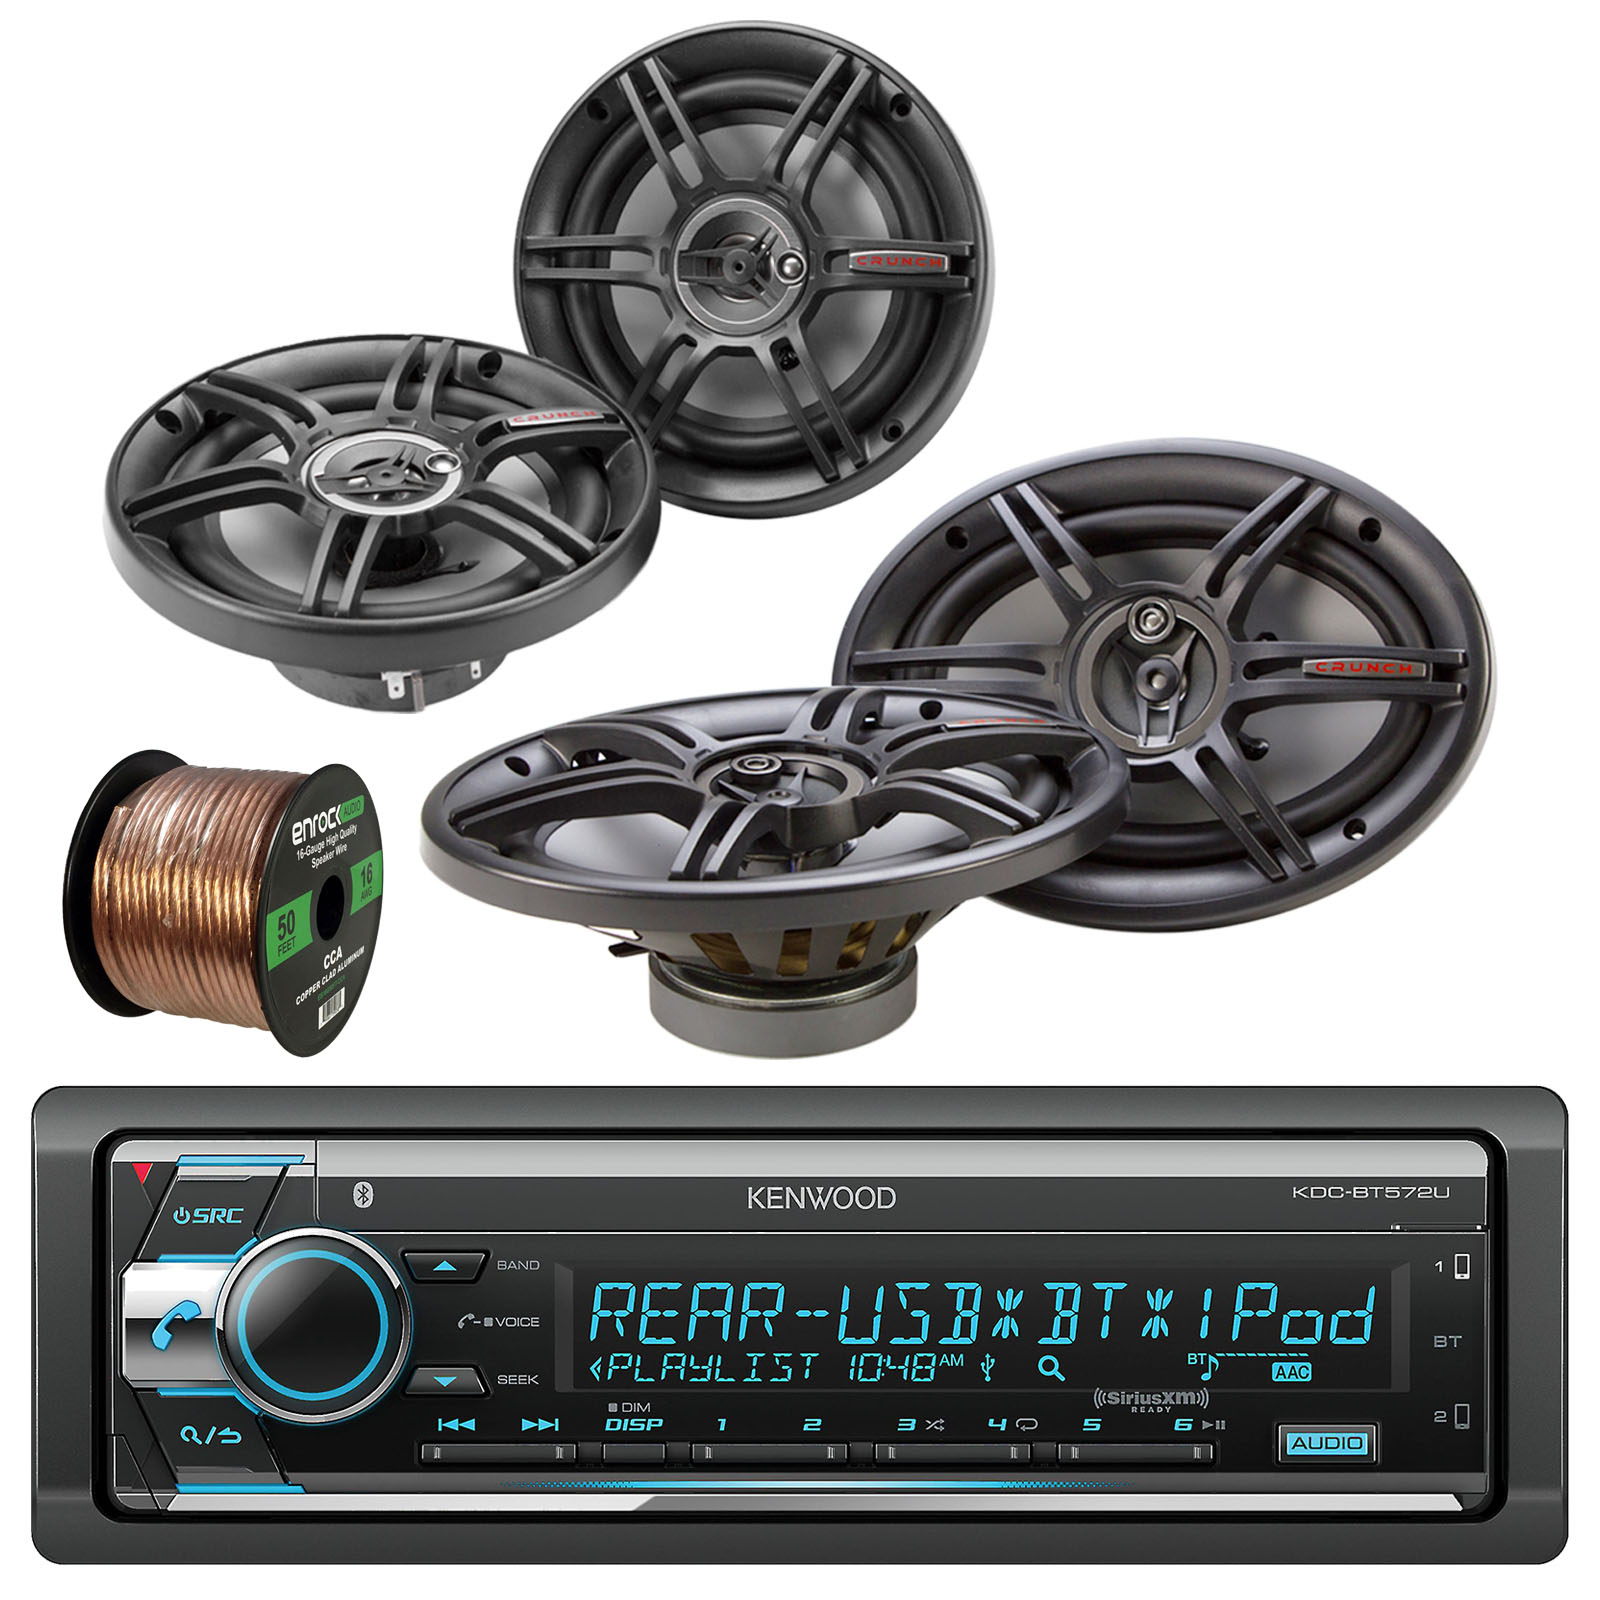 "Kenwood KDC-BT572U In Dash CD Player Bluetooth Radio Receiver With Crunch CS653 6.5"" Full Range 3-Way Car Speaker (Pair), Crunch CS693 6x9"" Full Range 3-Way Car Speakers (Pair) & Enrock 16G 50' Wire"